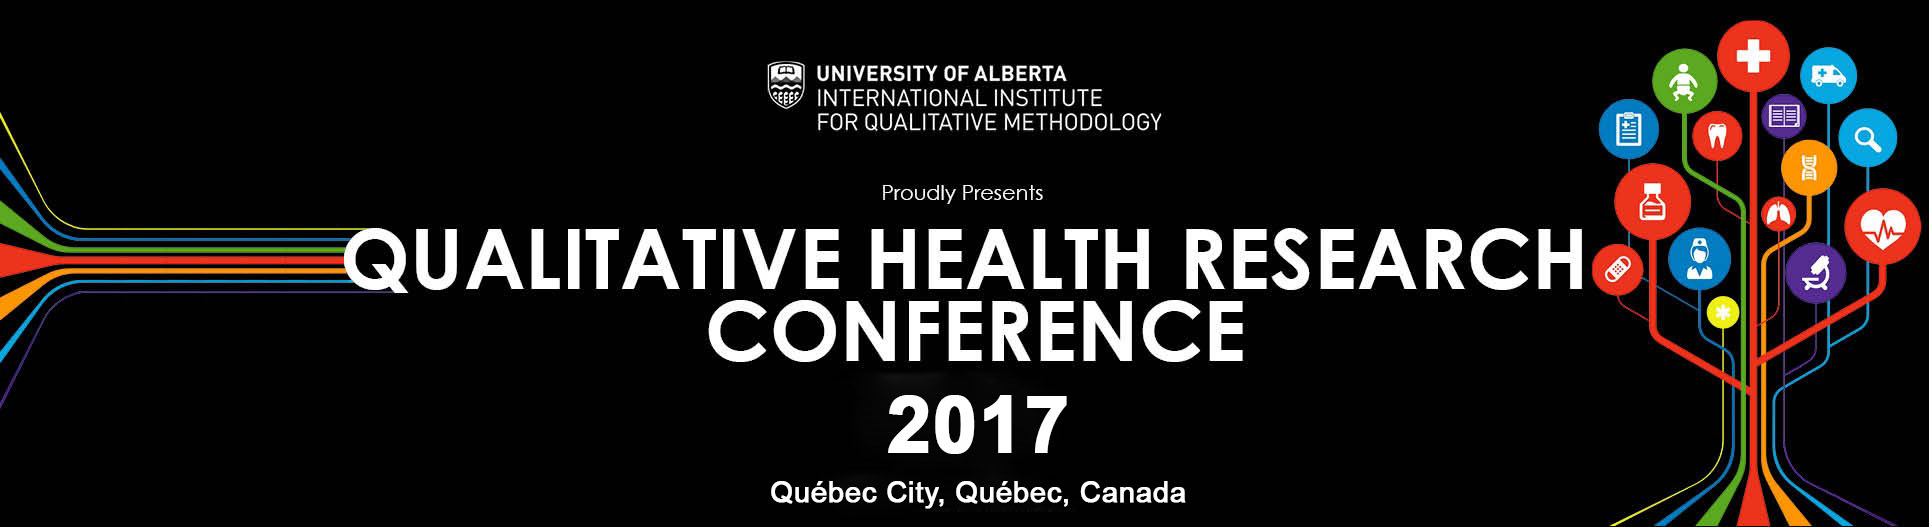 23rd Qualitative Health Research Conference